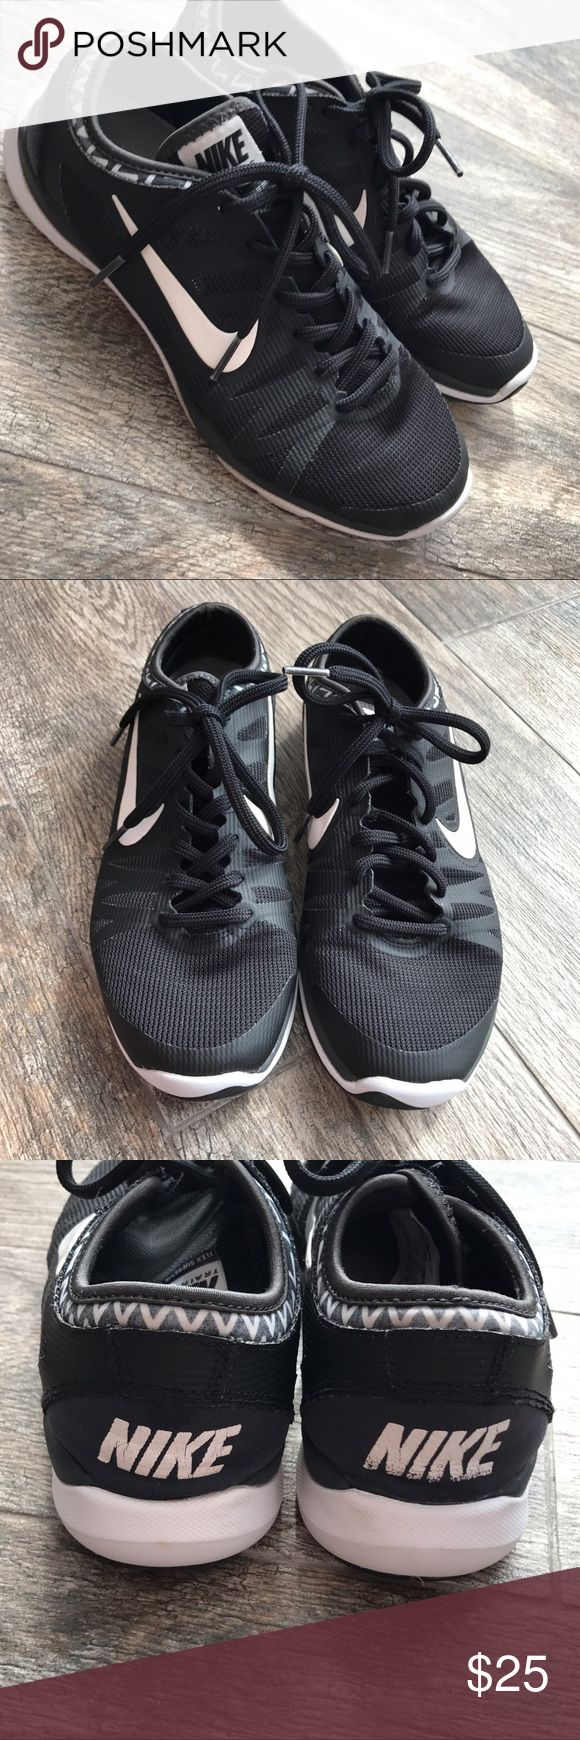 Nike Flex Supreme TR 3 Nike Flex Supreme TR 3 - used, clean, still have some good life in them! Size 7. Different inserts just to have a bit of more comfort. Good, not perfect condition. 😊 Nike Shoes Sneakers